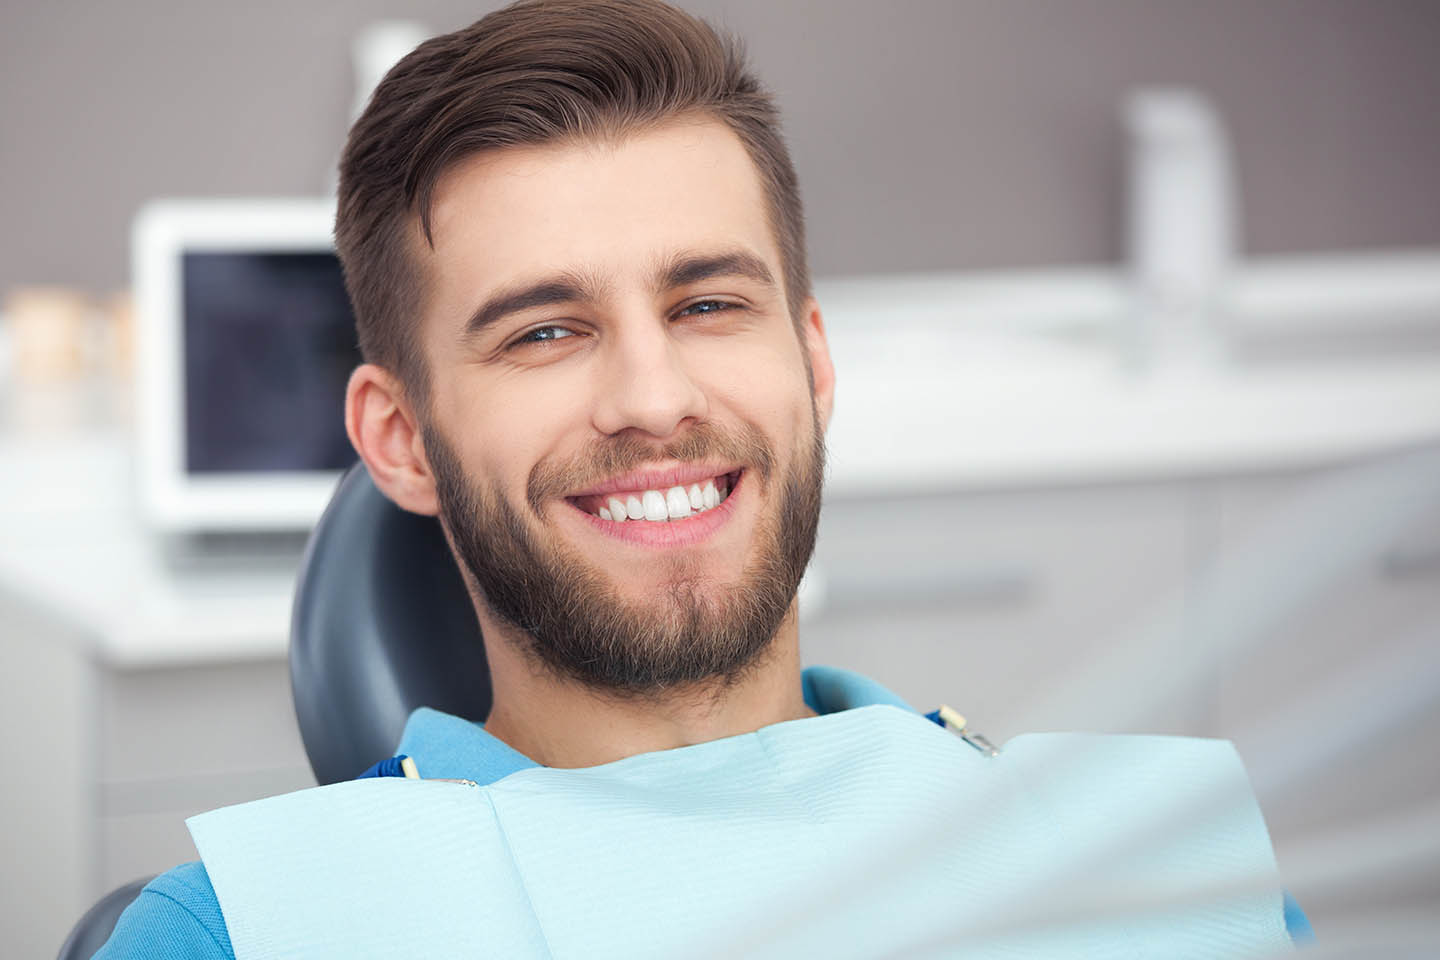 Man smiling while in dentist's examination chair